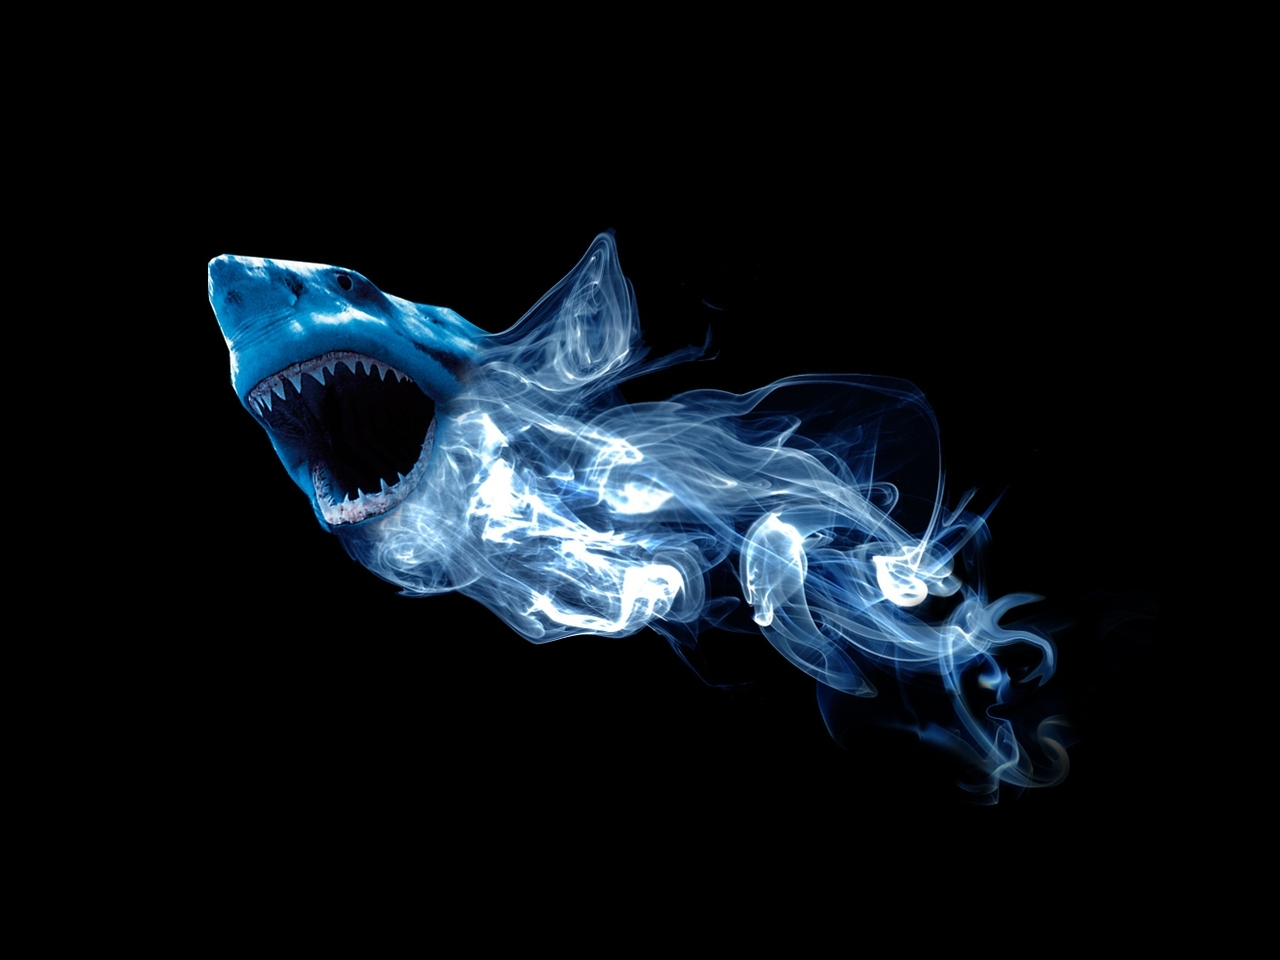 25490 download wallpaper Animals, Background, Sharks screensavers and pictures for free